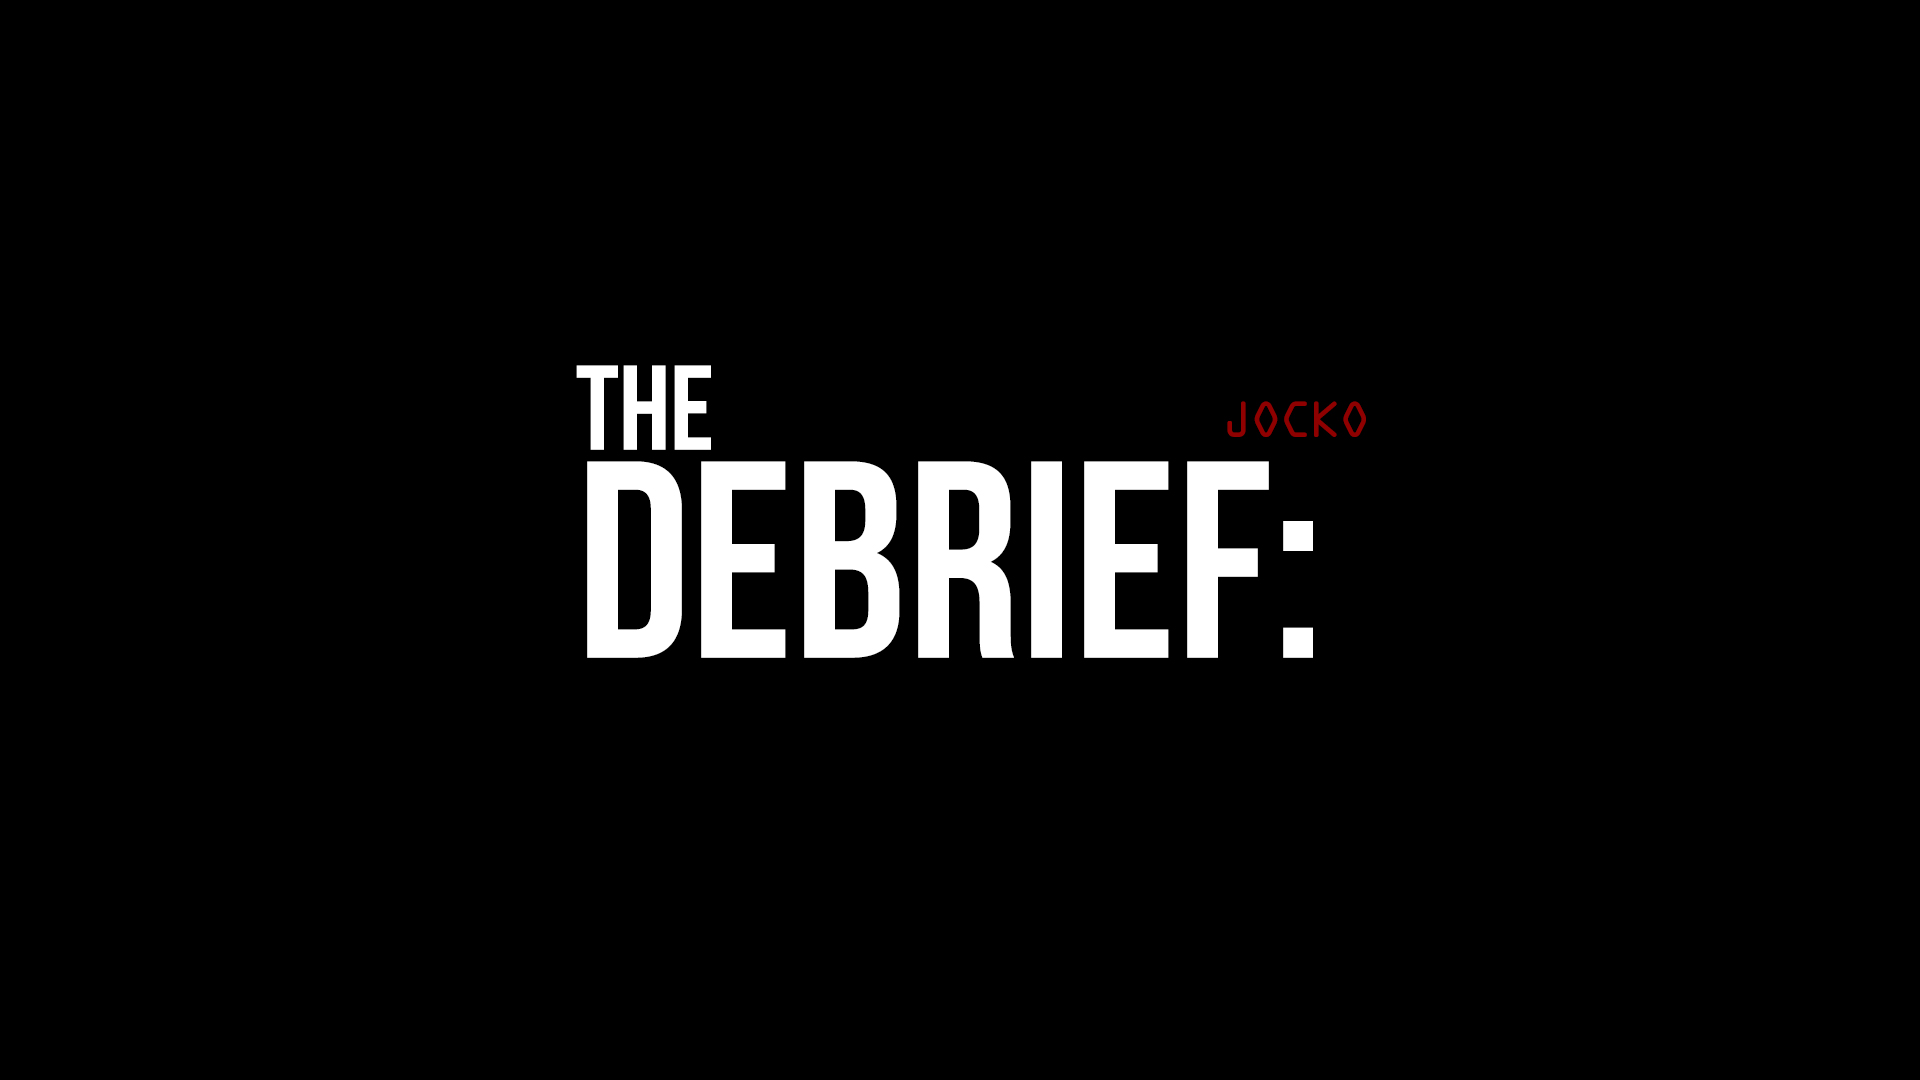 The Debrief w/ Jocko and Dave Berke #6: Iterative Decision Making. Making Small Moves, Rather Than Big Moves